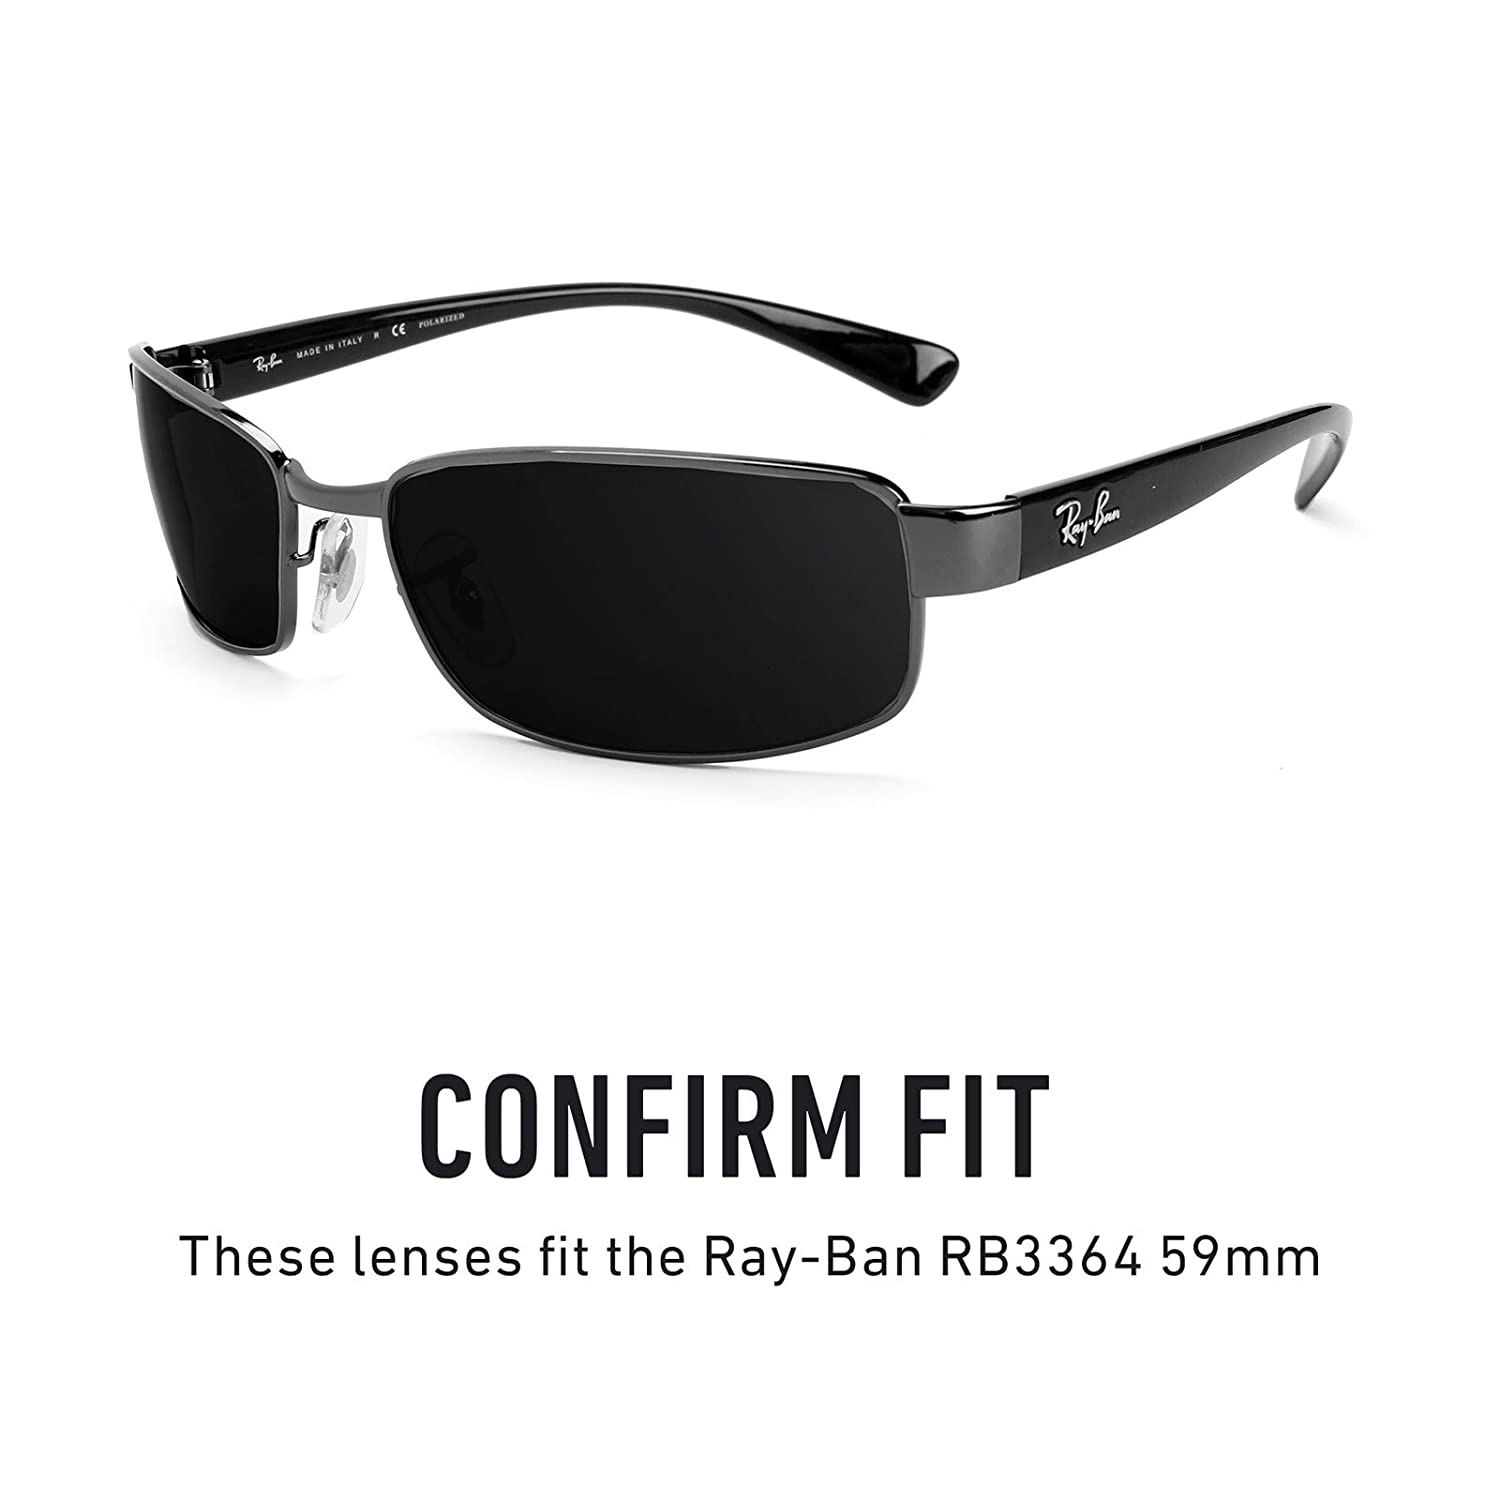 8cd01258d01 Revant Polarized Replacement Lenses for Ray-Ban RB3364 59mm Elite Black  Chrome MirrorShield®  Amazon.co.uk  Clothing